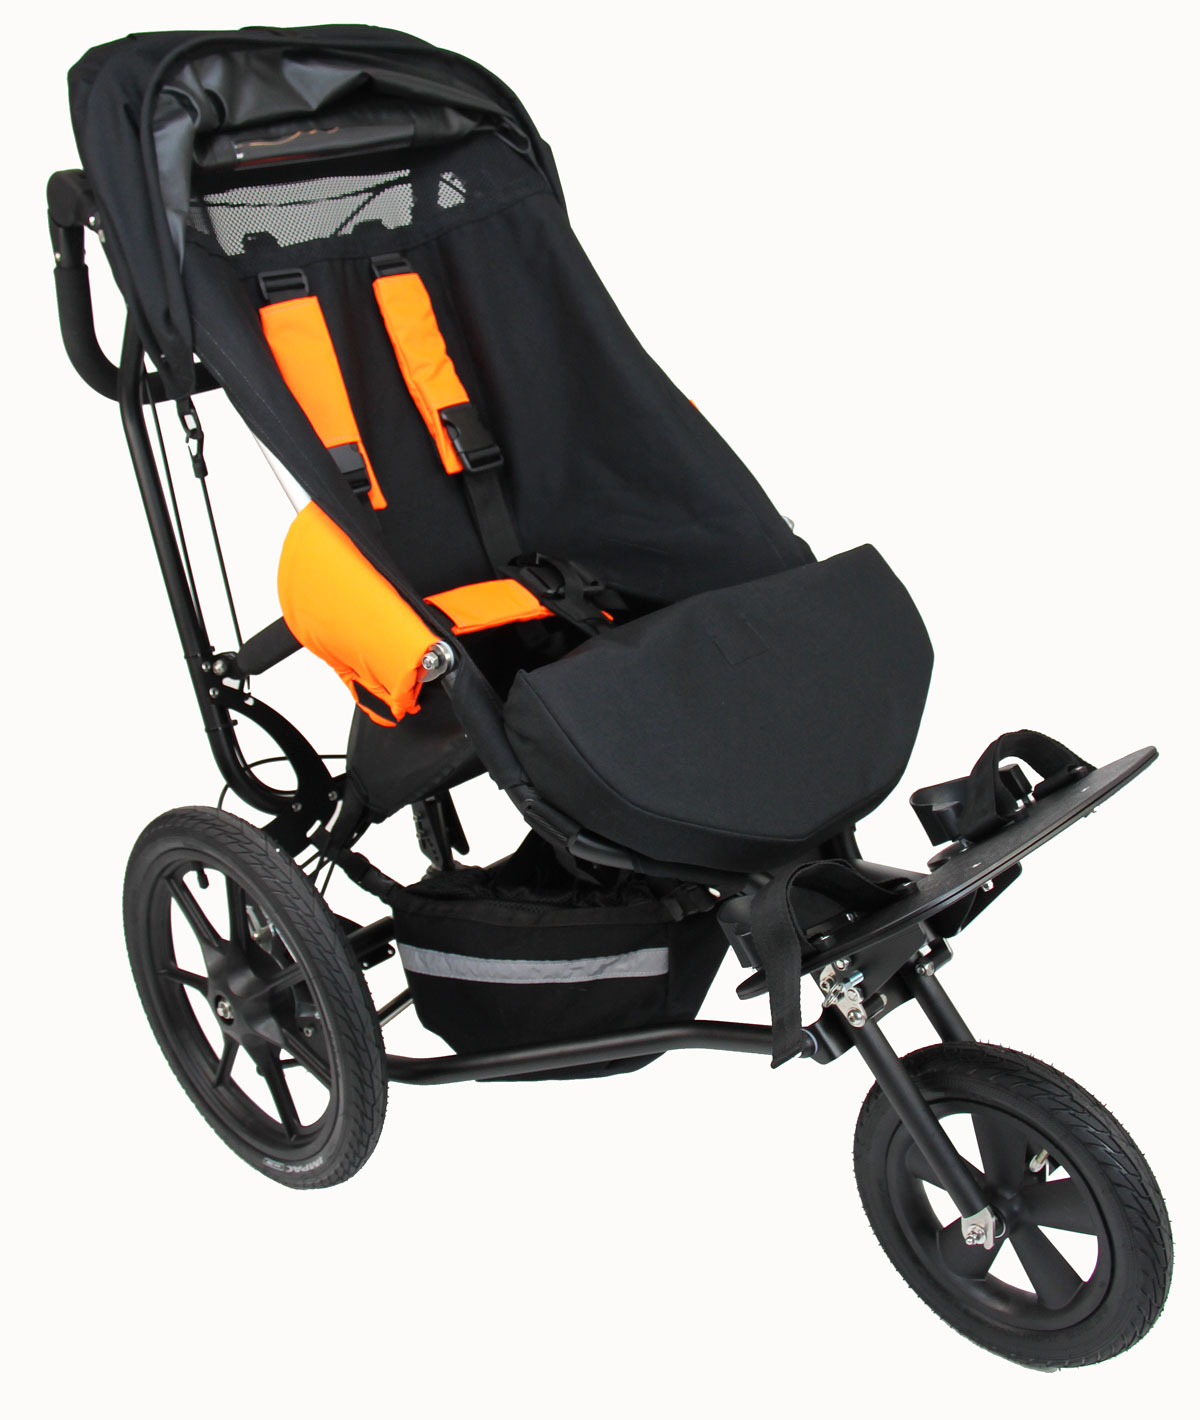 Delta All-Terrain buggy with seat extender fitted